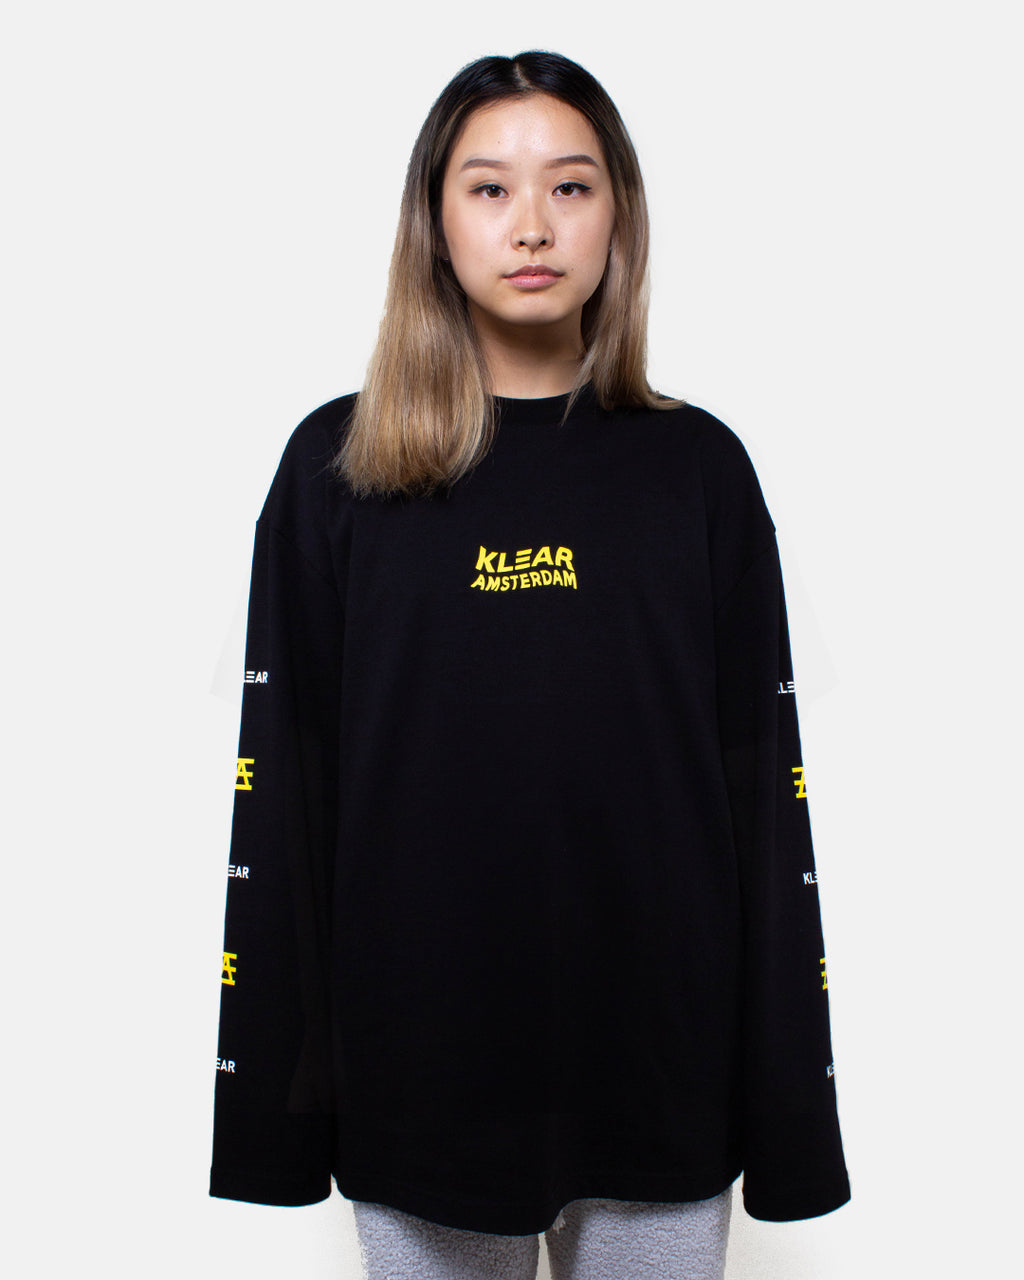 KLEAR Logo Long Sleeve €59,95